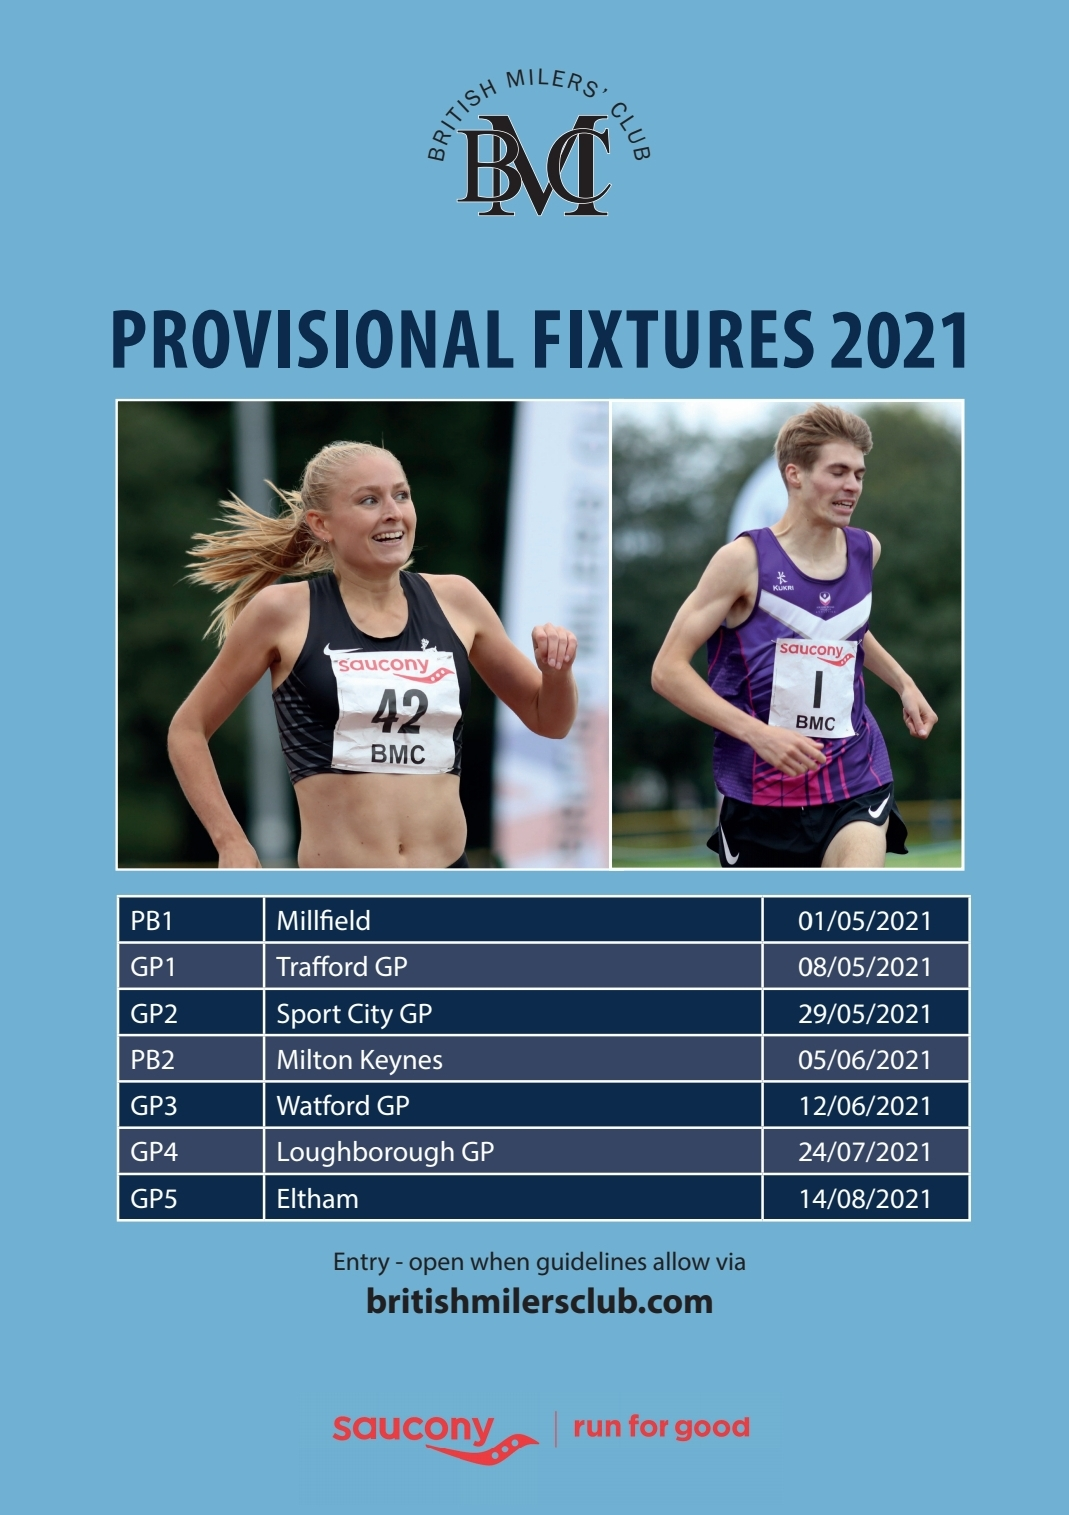 Provisional Fixtures 2021